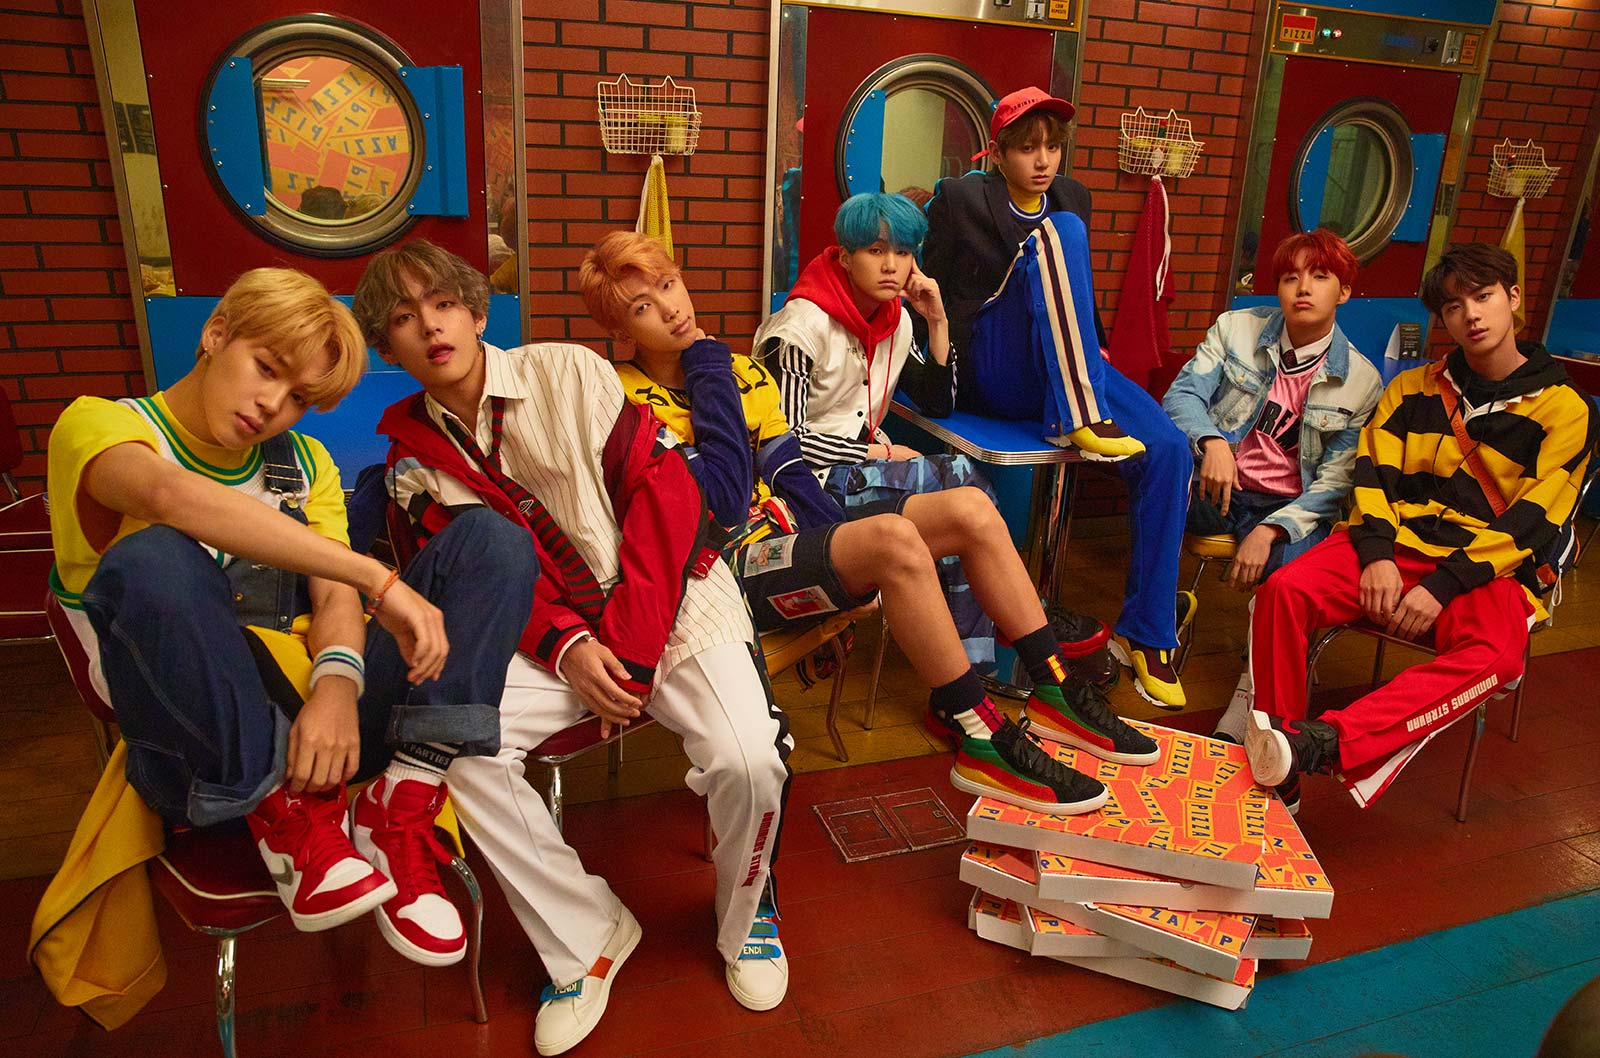 Bts Goes For Bright And Colorful Concepts In New Love Yourself